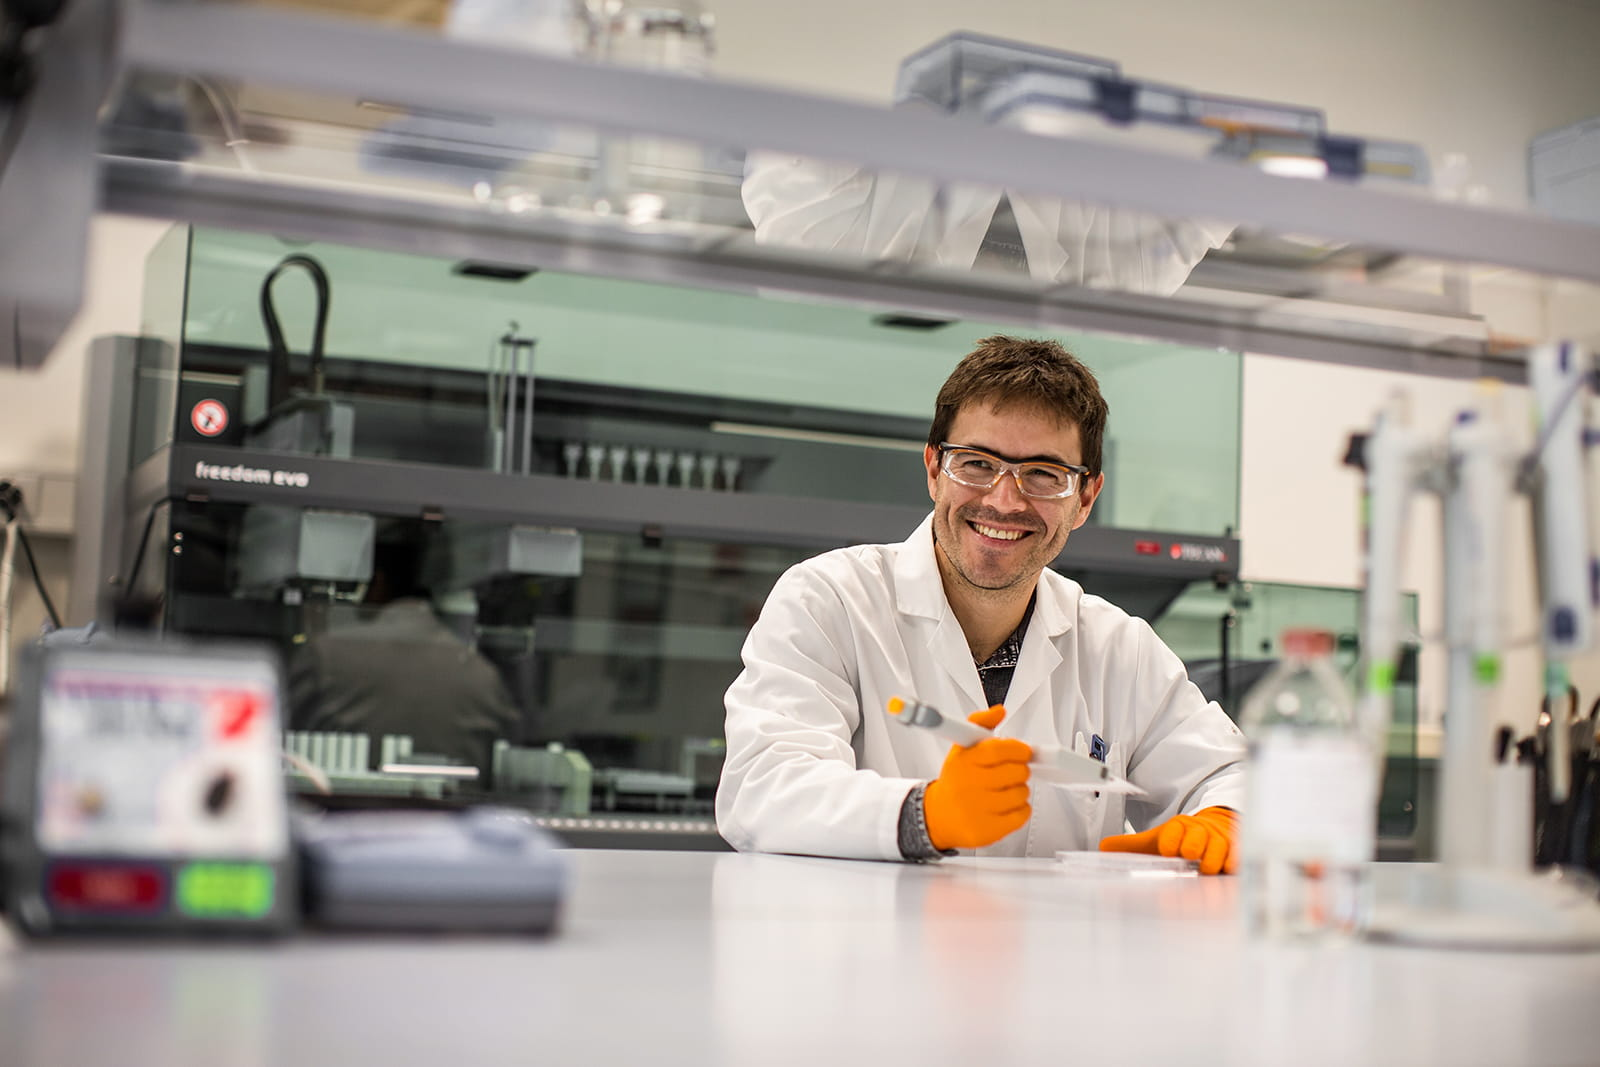 Researcher smiling